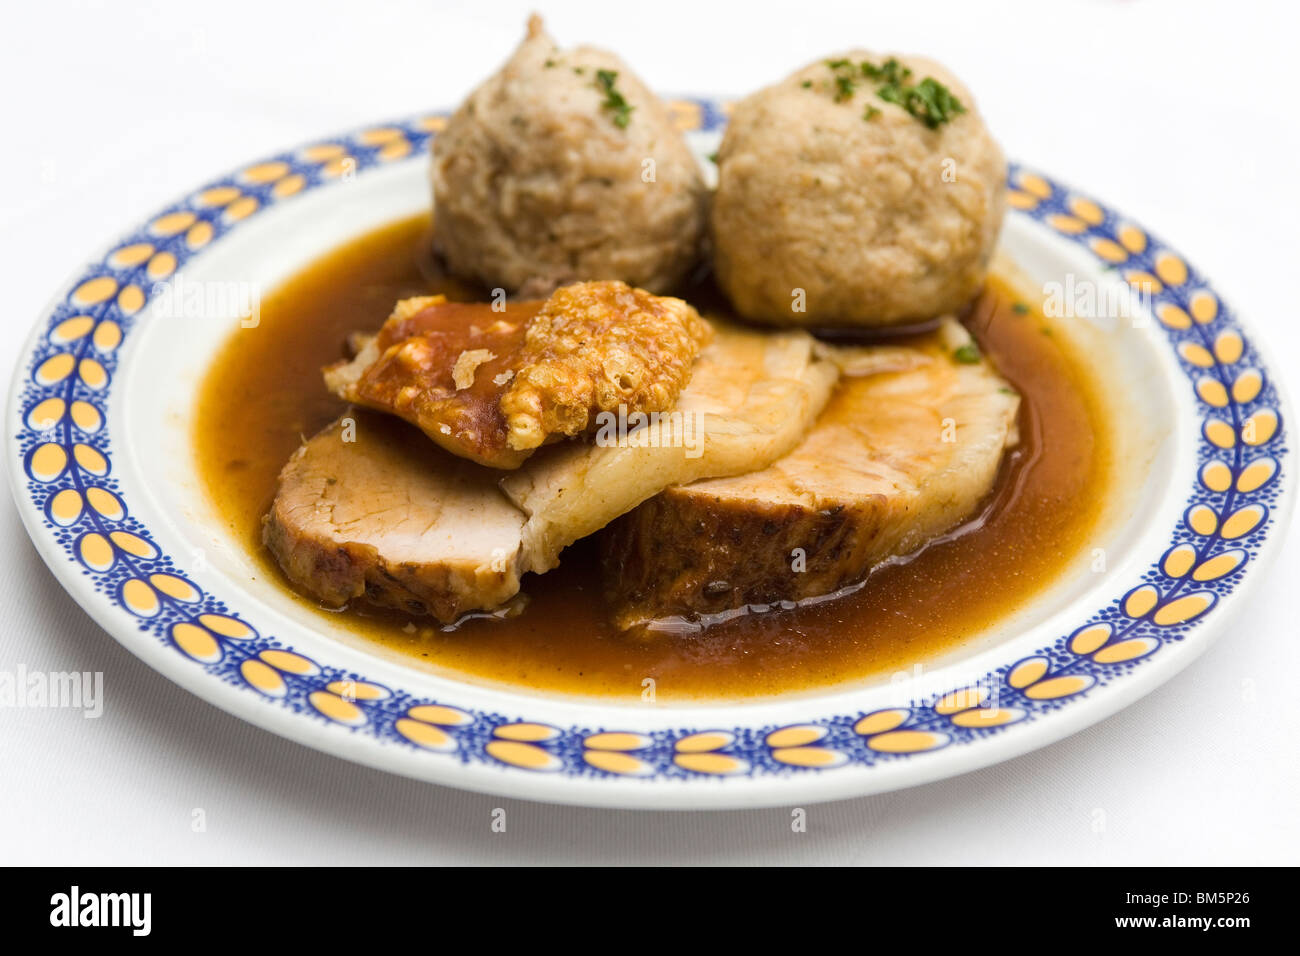 Roast Pork (Schweinesbraten) is served with crispy crackling and dumplings in Bavaria, Germany. - Stock Image